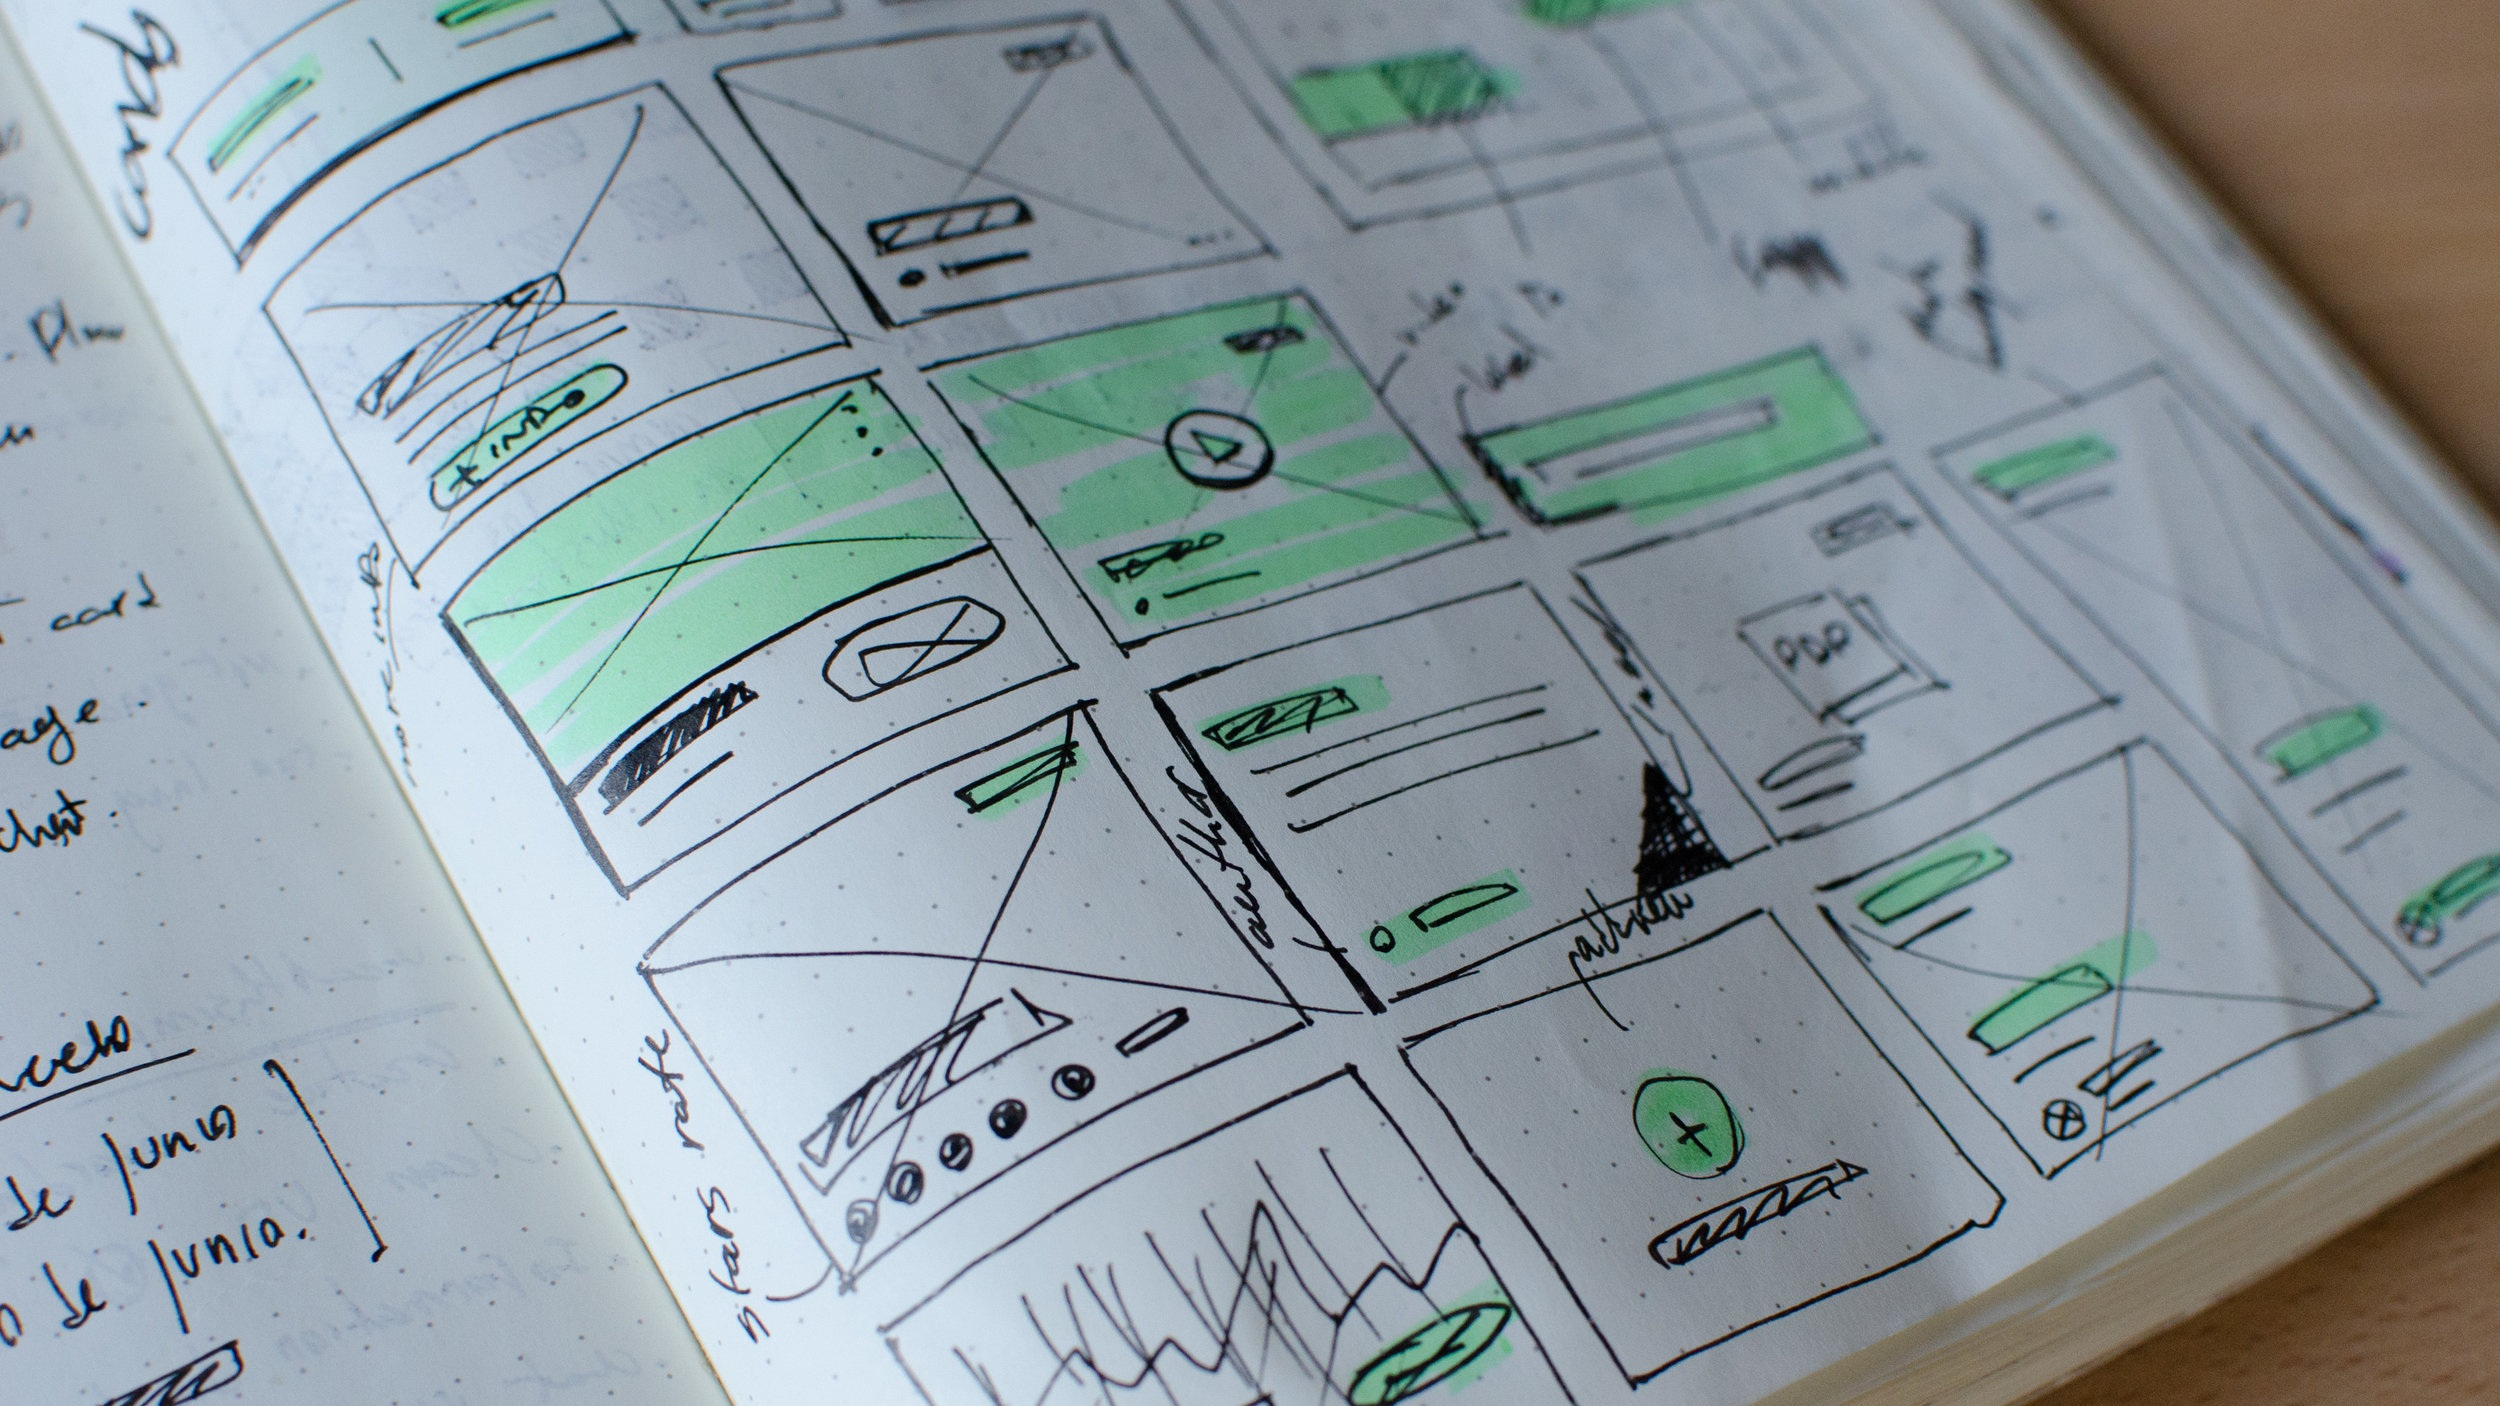 Why does web design matter?